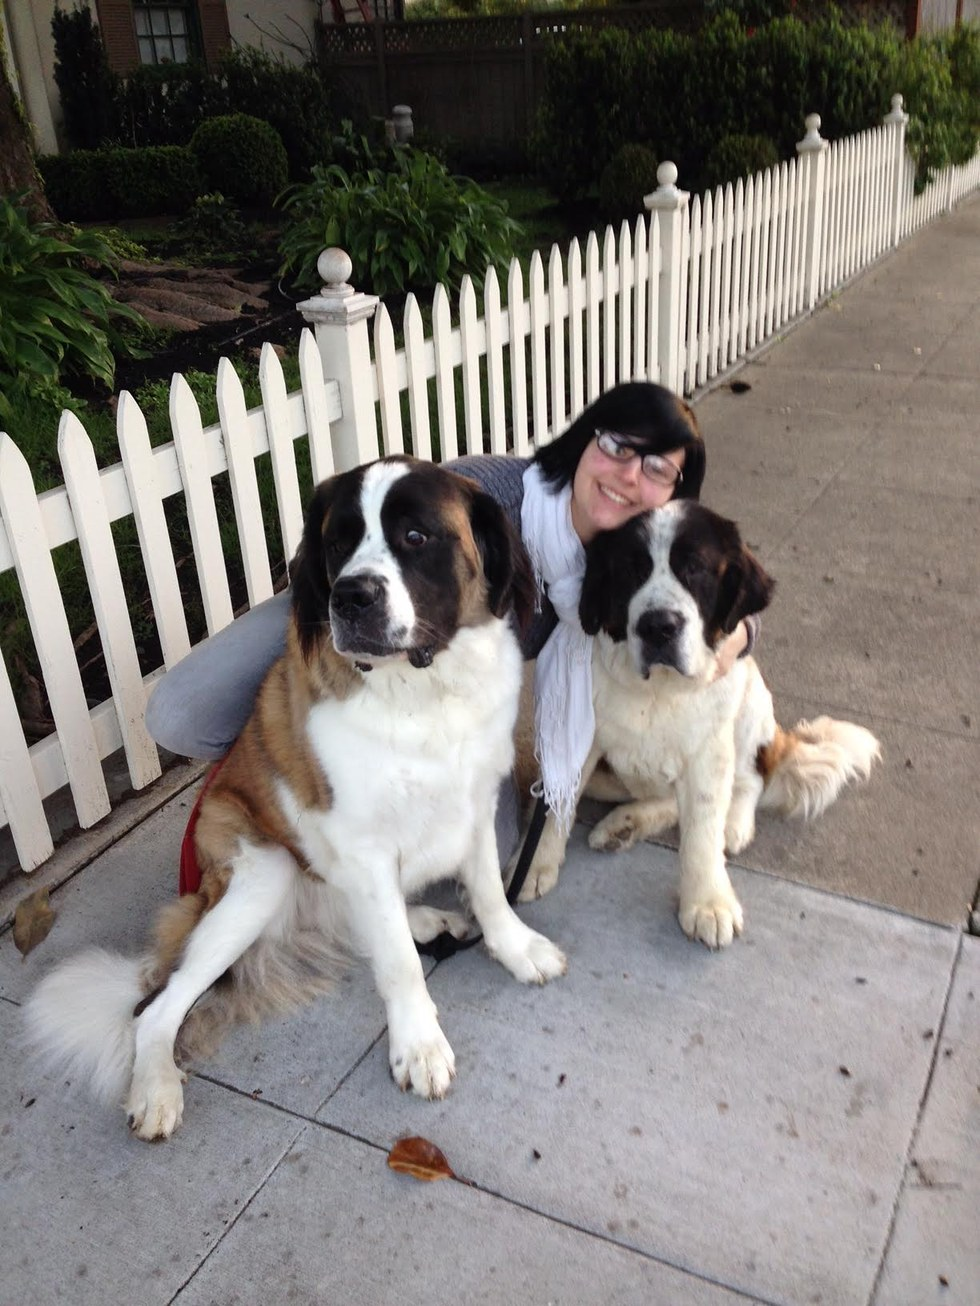 St. Bernard dog and her new family in the United States